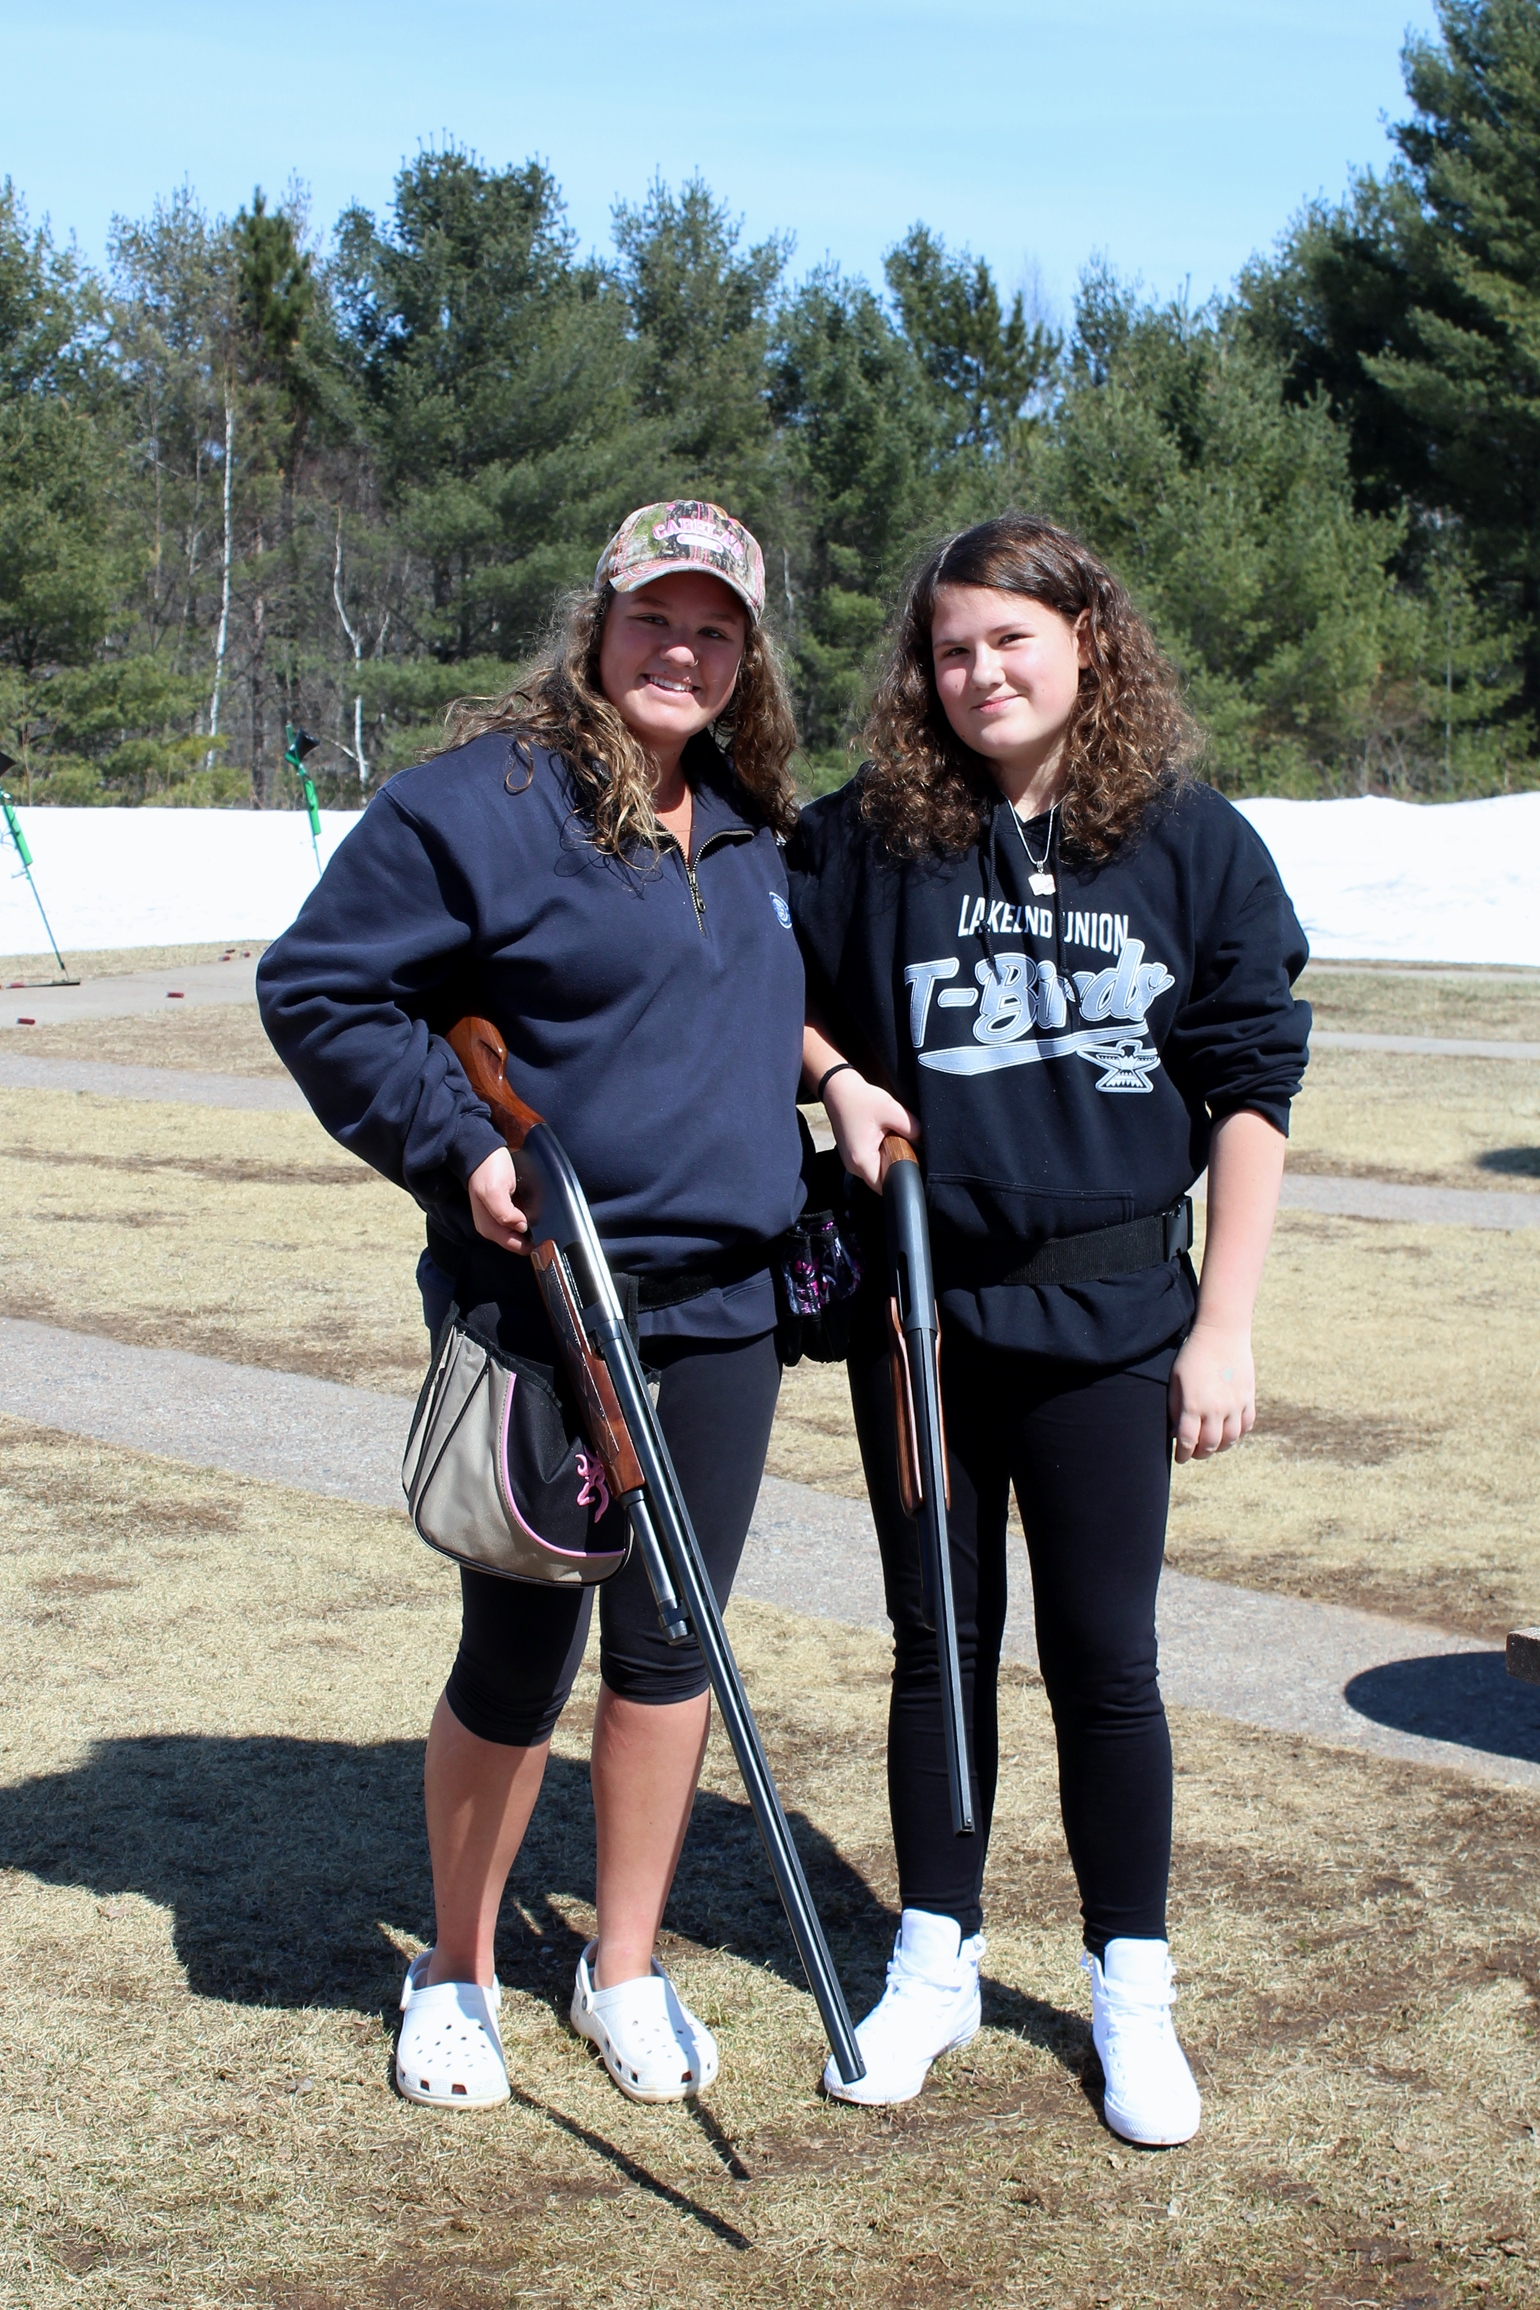 Madison and Payton practice trap shooting at the Minocqua Gun Club. Kim Johnson photo